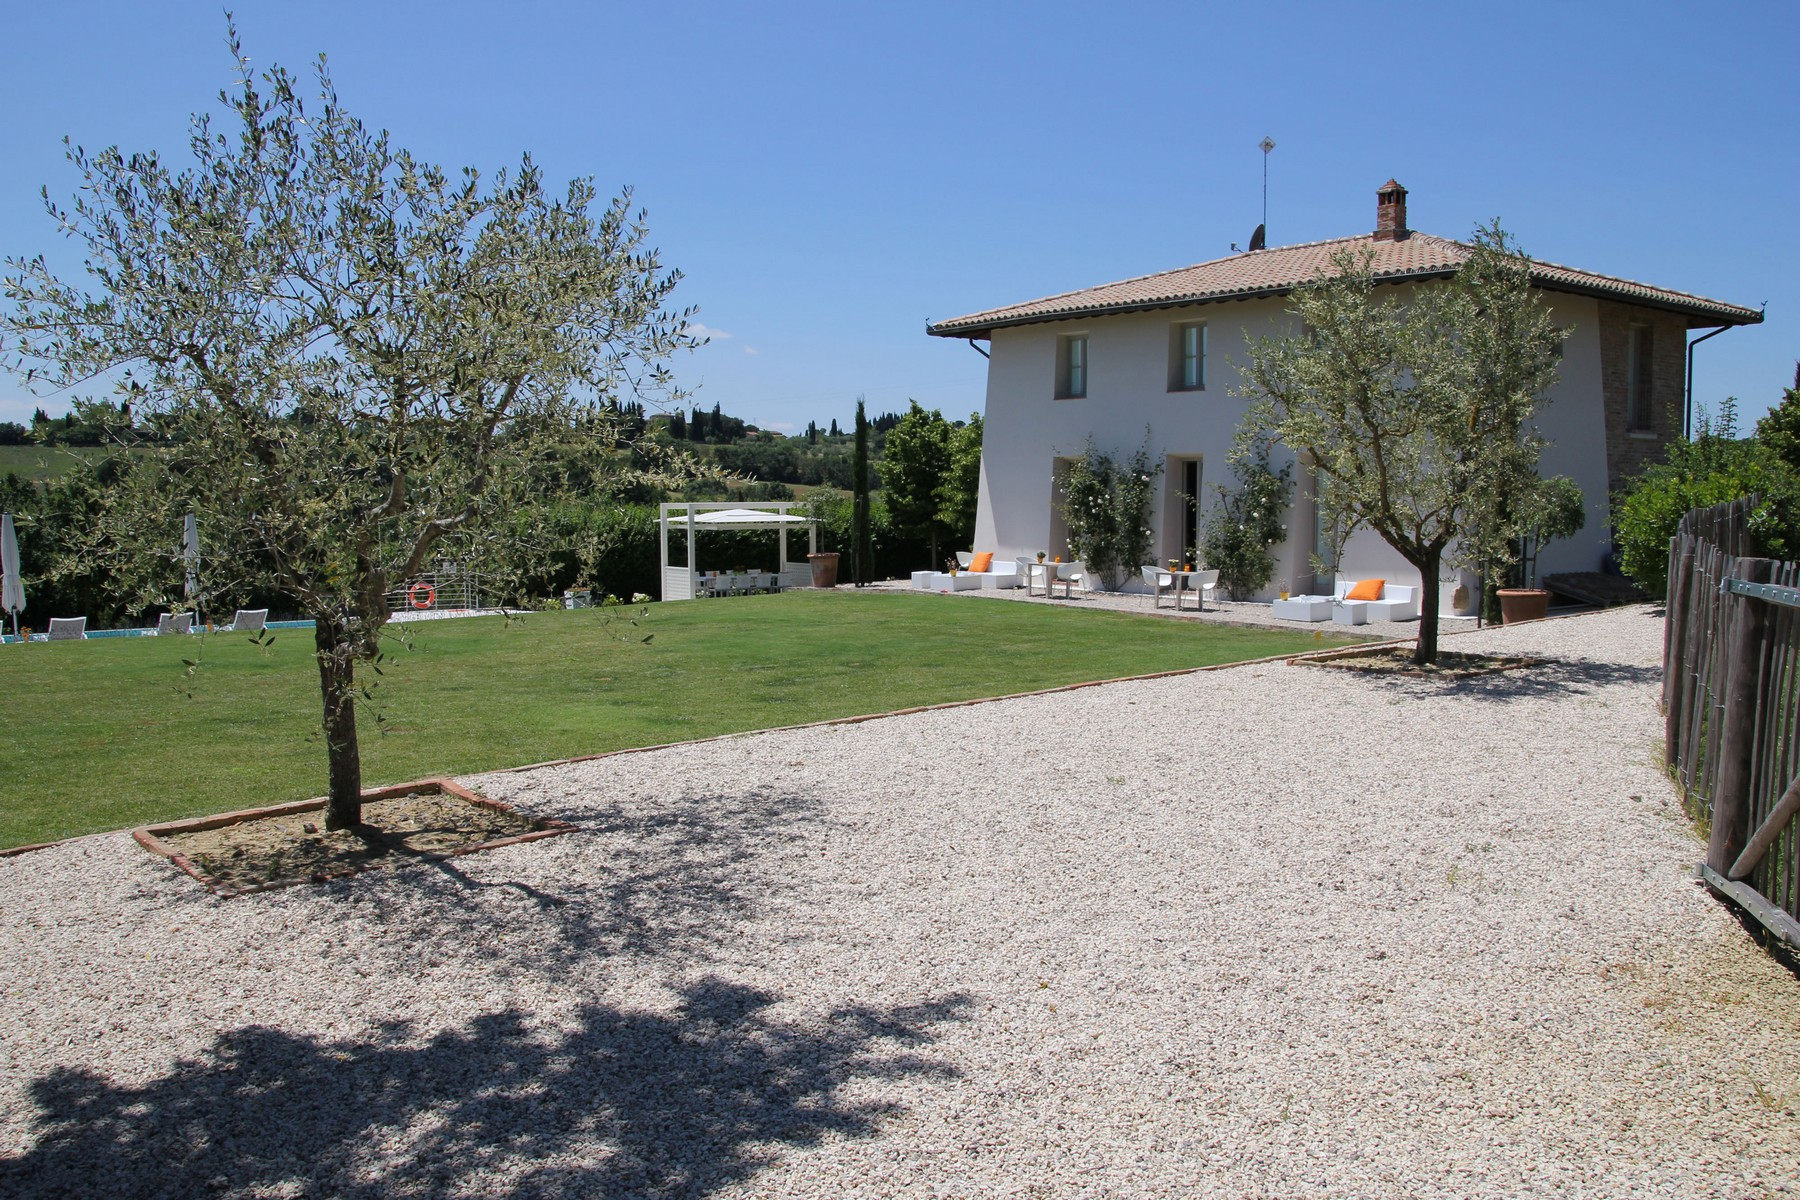 Additional photo for property listing at Splendid country chic style villa Pozzo della Chiana, Arezzo Italy